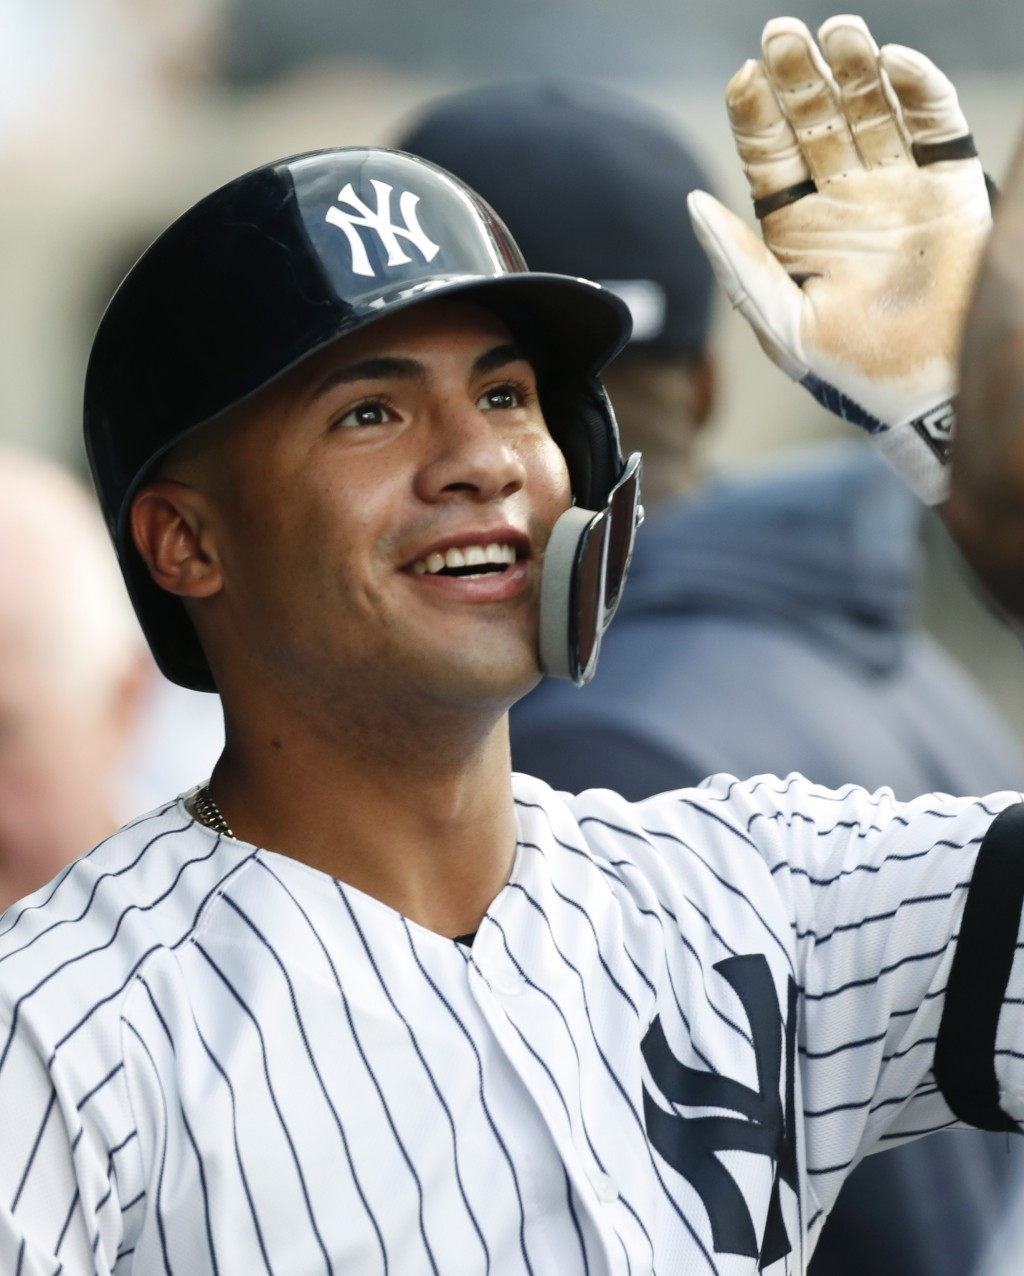 New York Yankees' Gleyber Torres reacts in the dugout after hitting a solo home run against the Toronto Blue Jays during the second inning of a baseba...